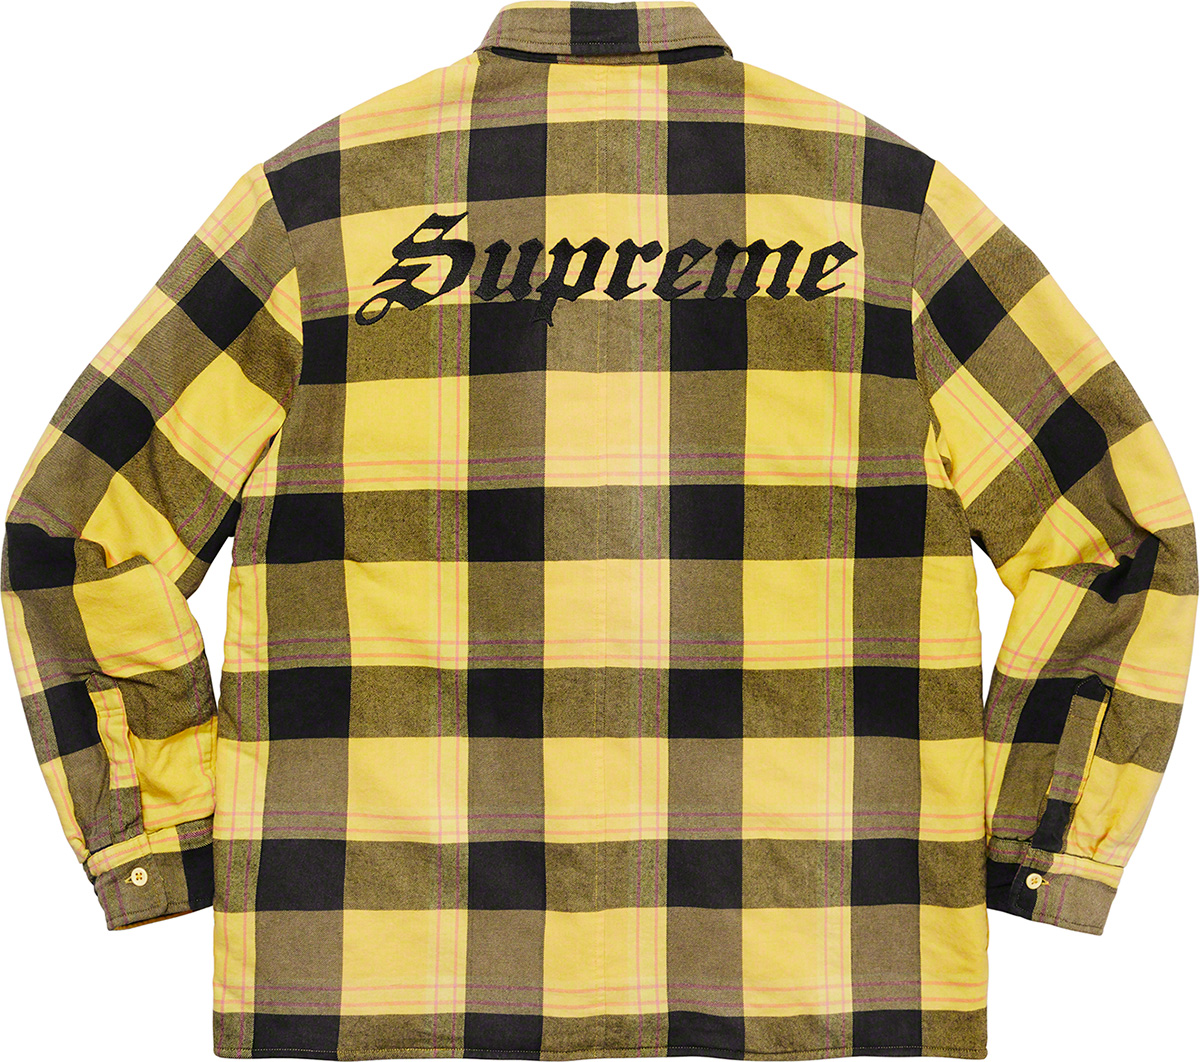 Supreme 2020fw Quilted Flannel Shirt シュプリーム キルテッド チェック シャツ イエロー 後ろ